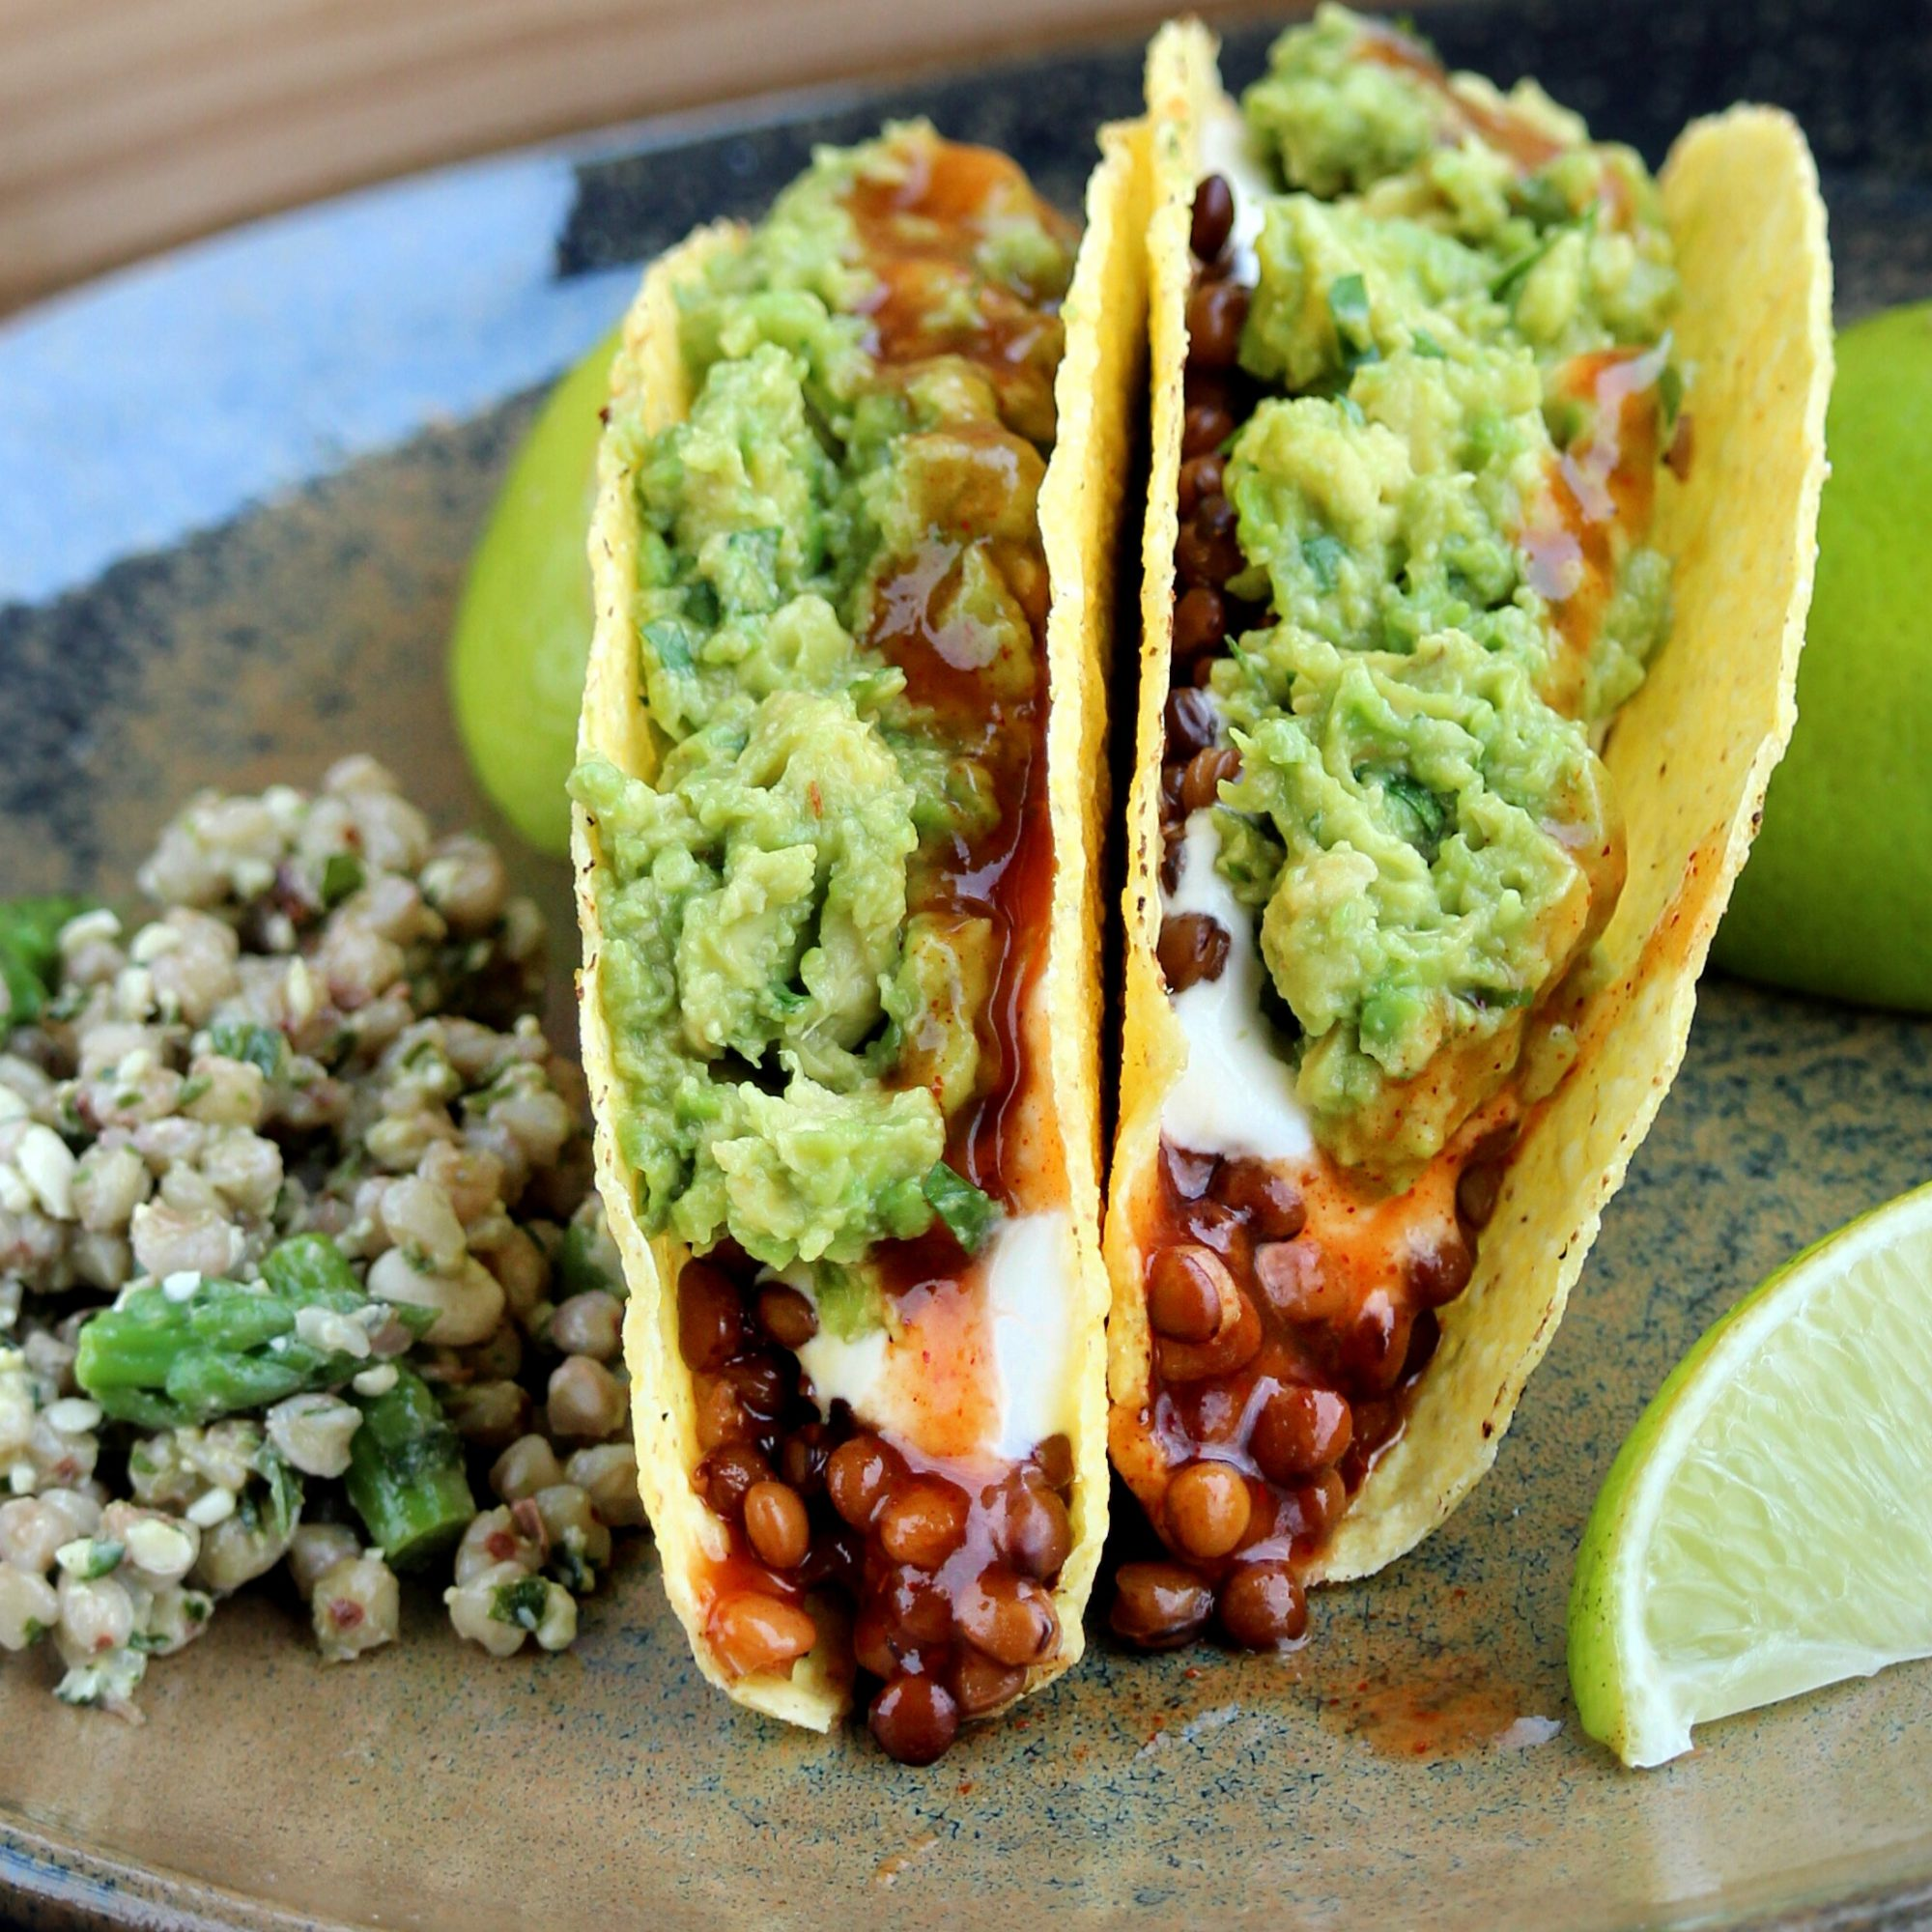 lentils in hard taco shell with sour cream and guacamole